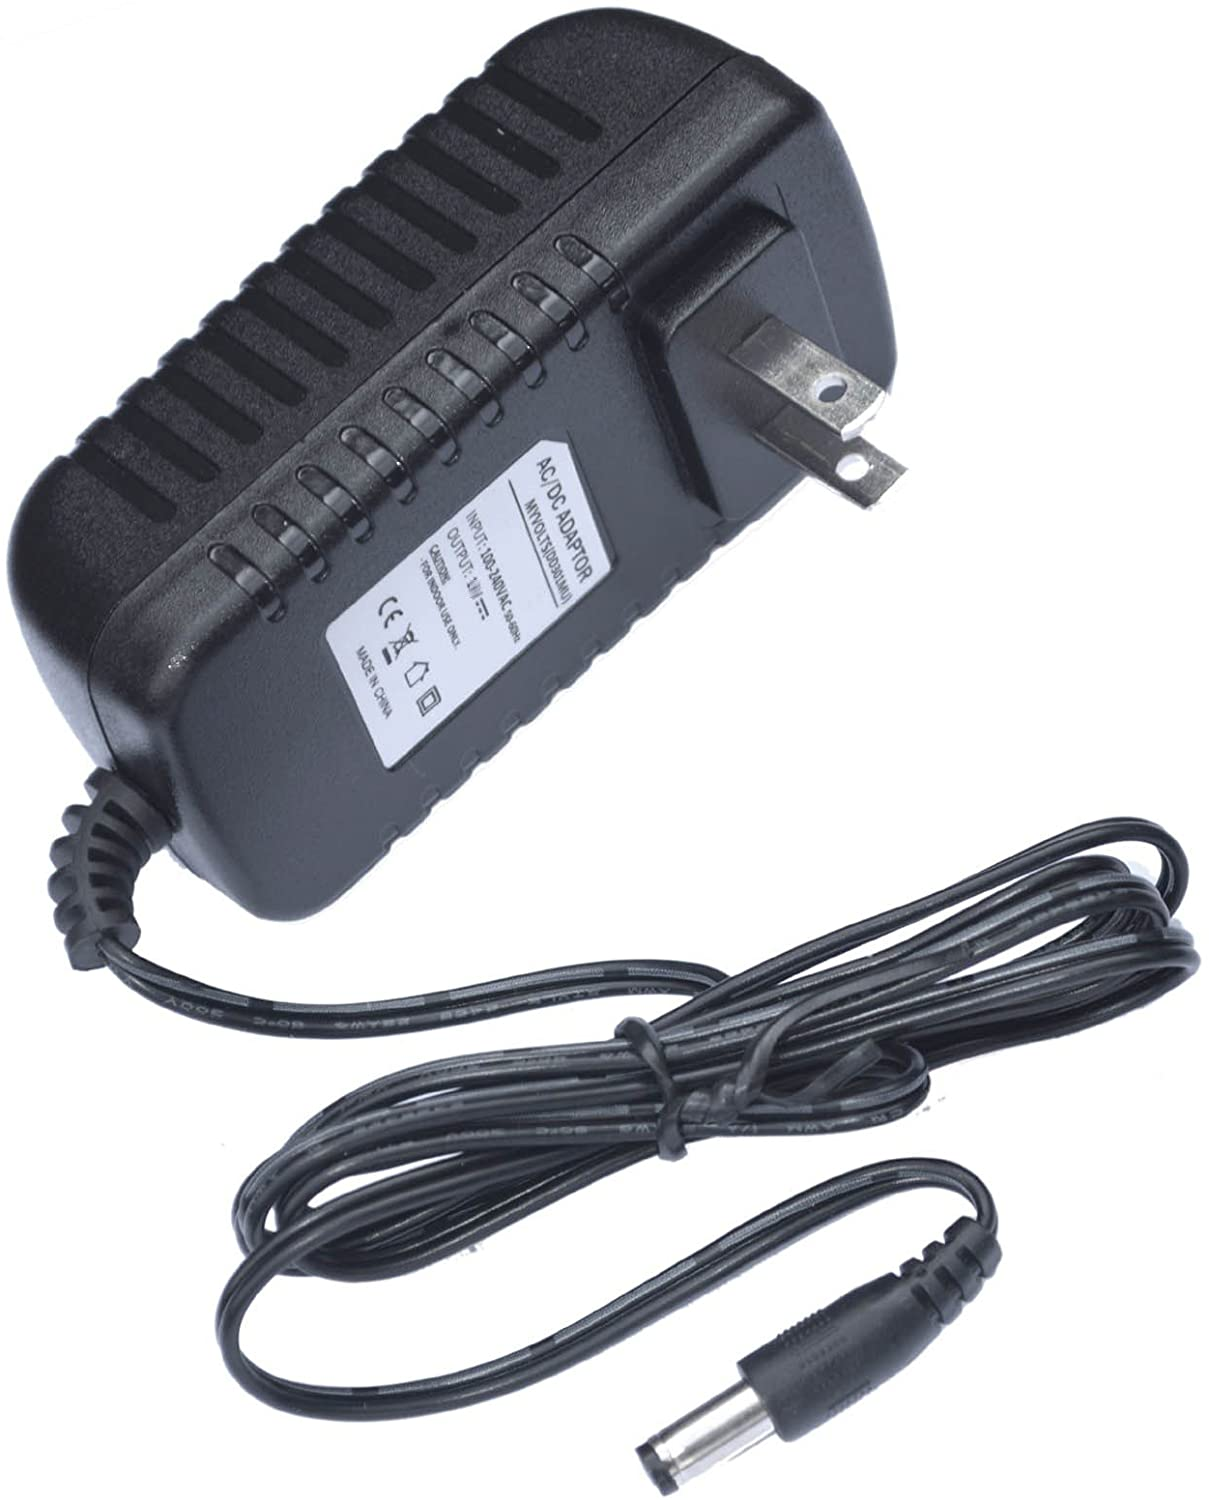 MyVolts 12V Power Supply Adaptor Compatible with Yamaha YPG-225 Keyboard - US Plug